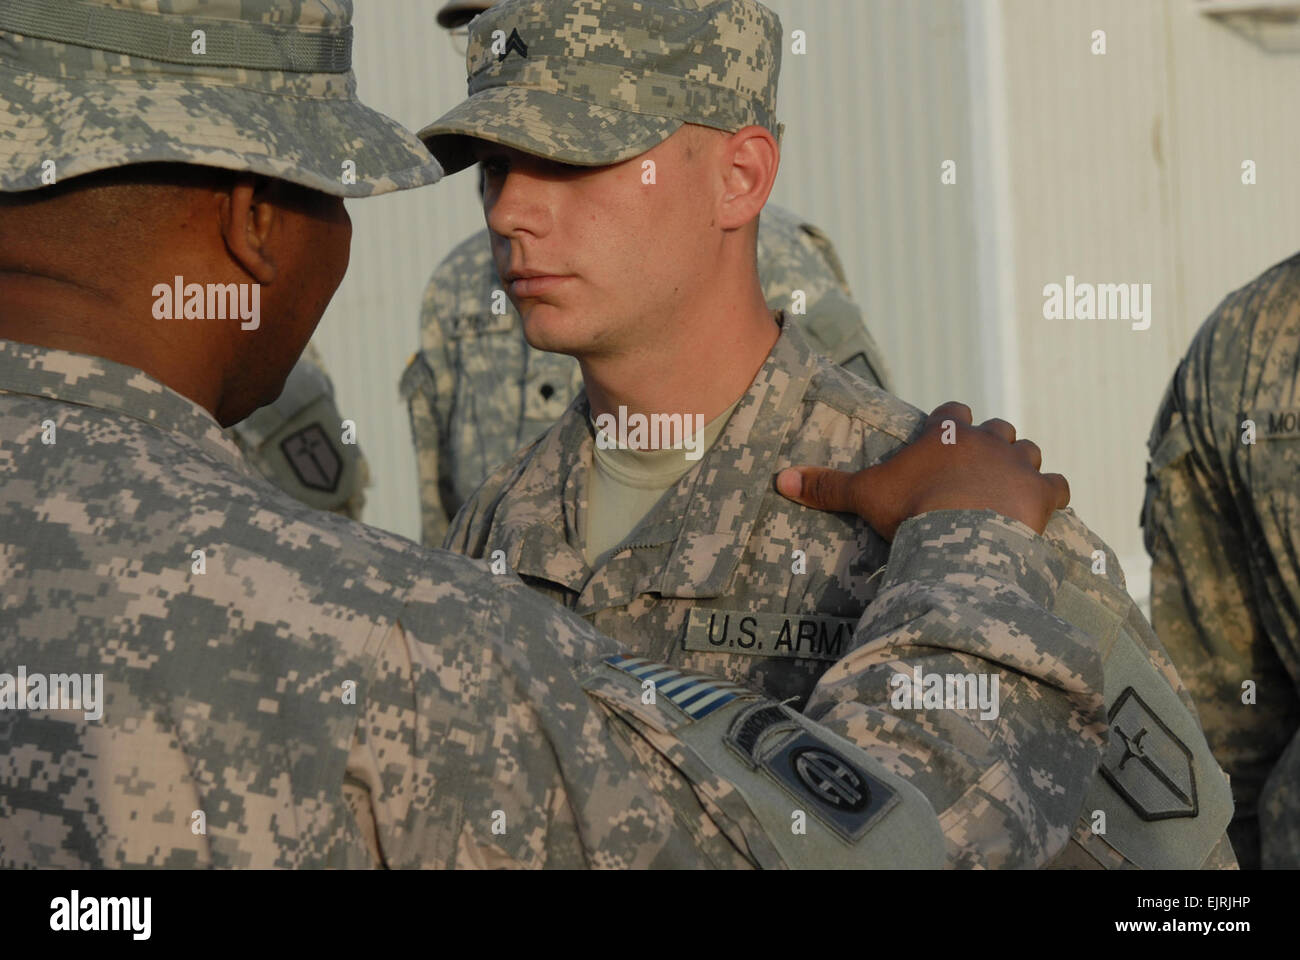 U.S. Army engineer Cpl. Kyle Morris, right, assigned to 46th Engineer Battalion, receives a certificate of achievement - Stock Image